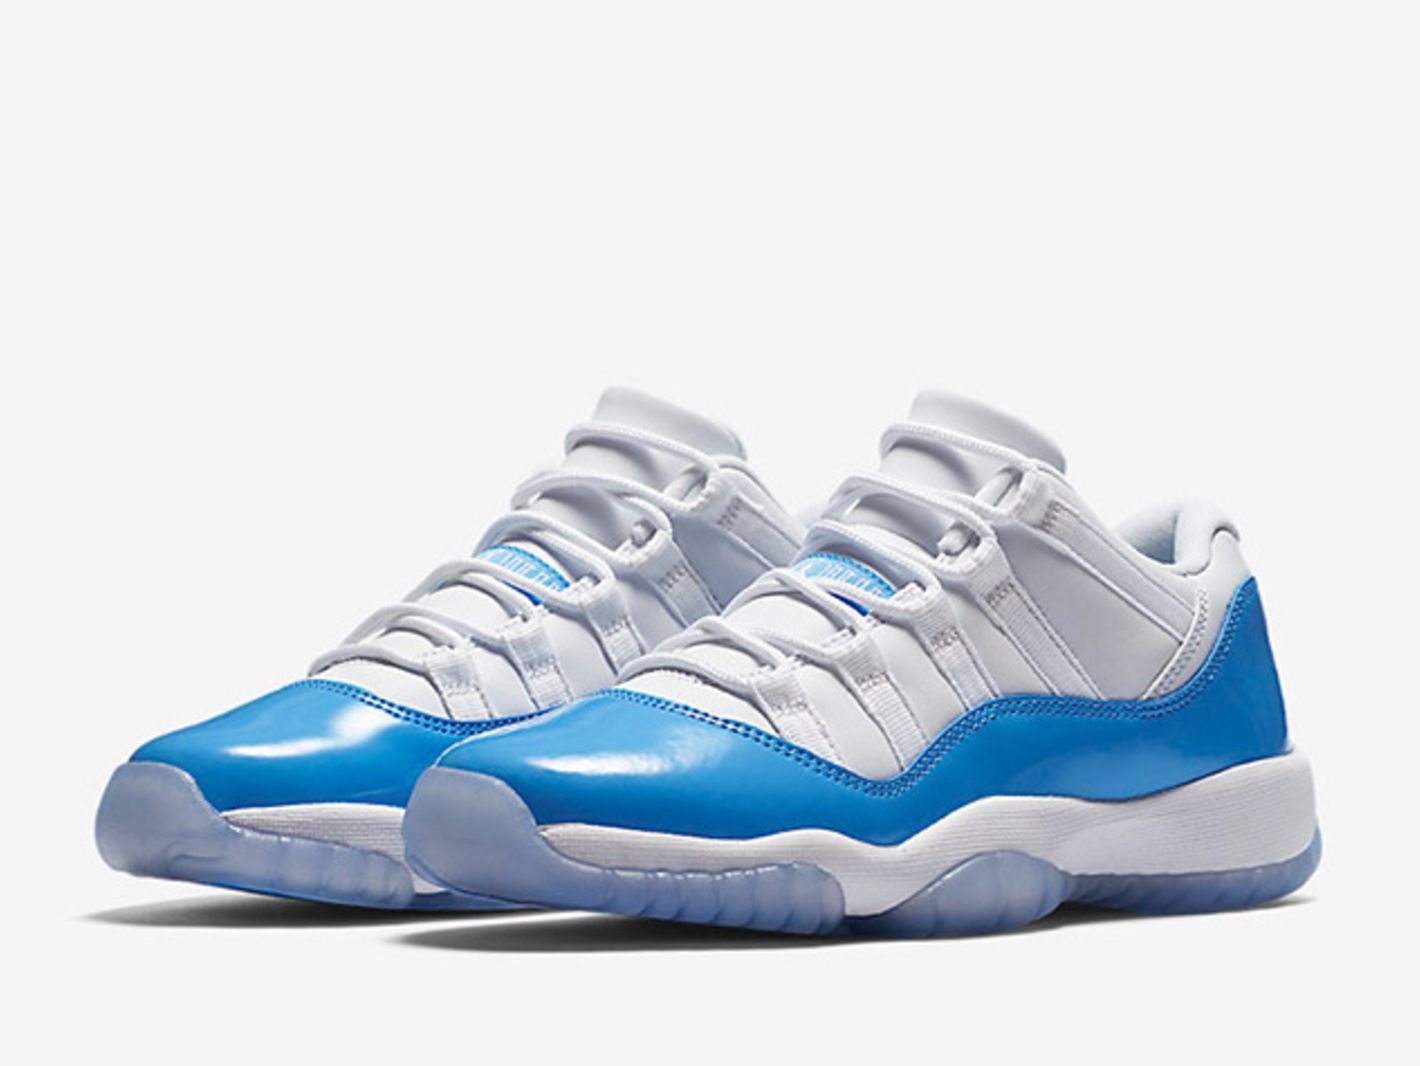 air jordan 11 retro low Archives - WearTesters 724efed9f